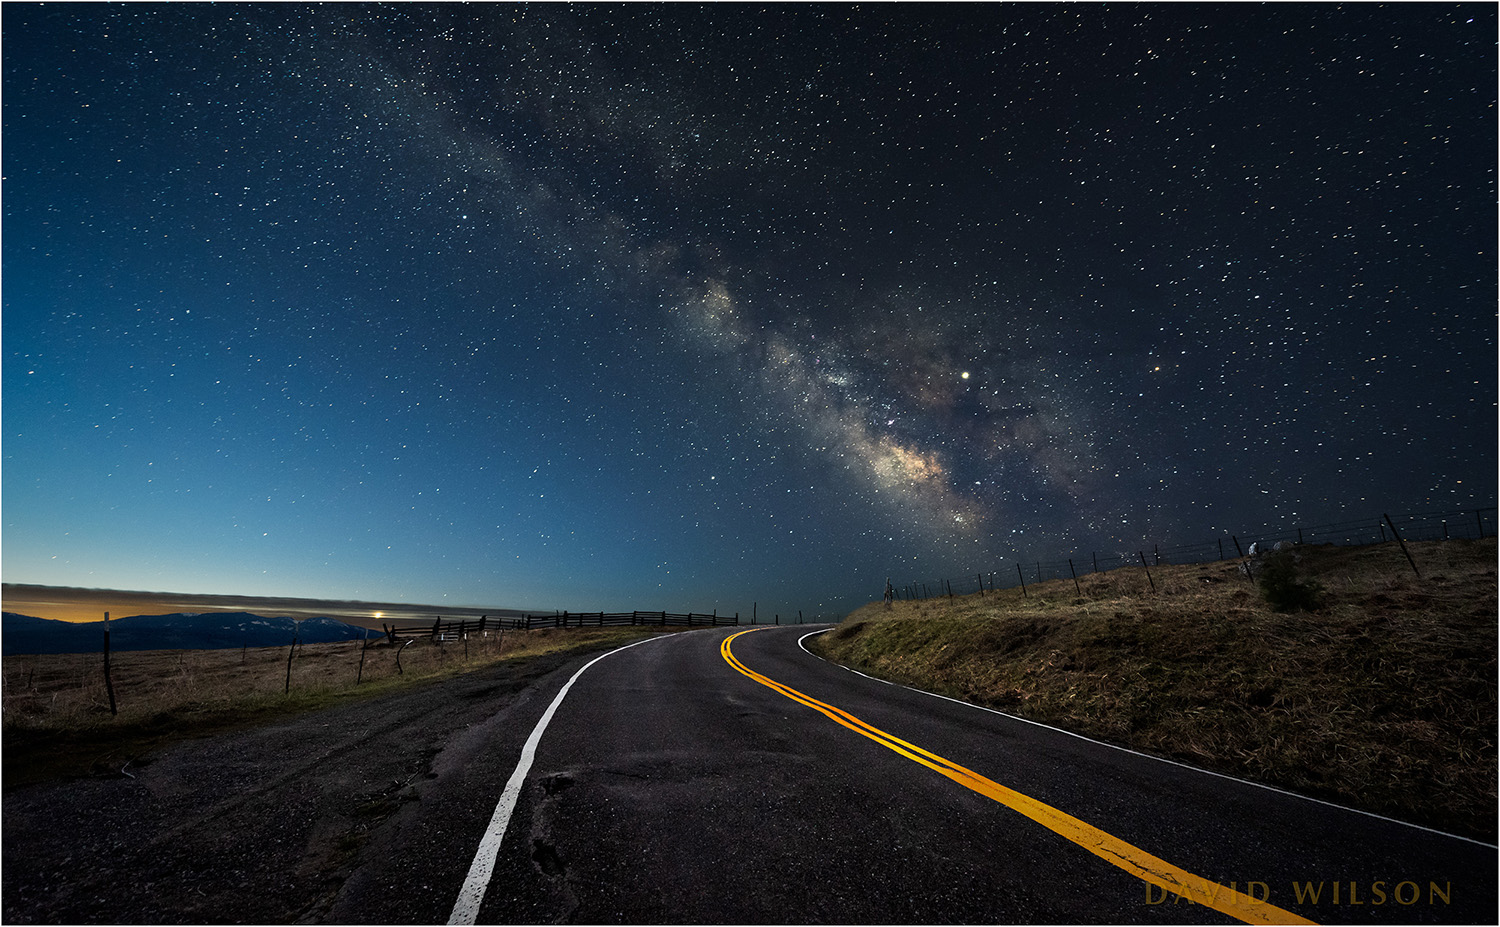 A bend in a rural road leads toward the Milky Way